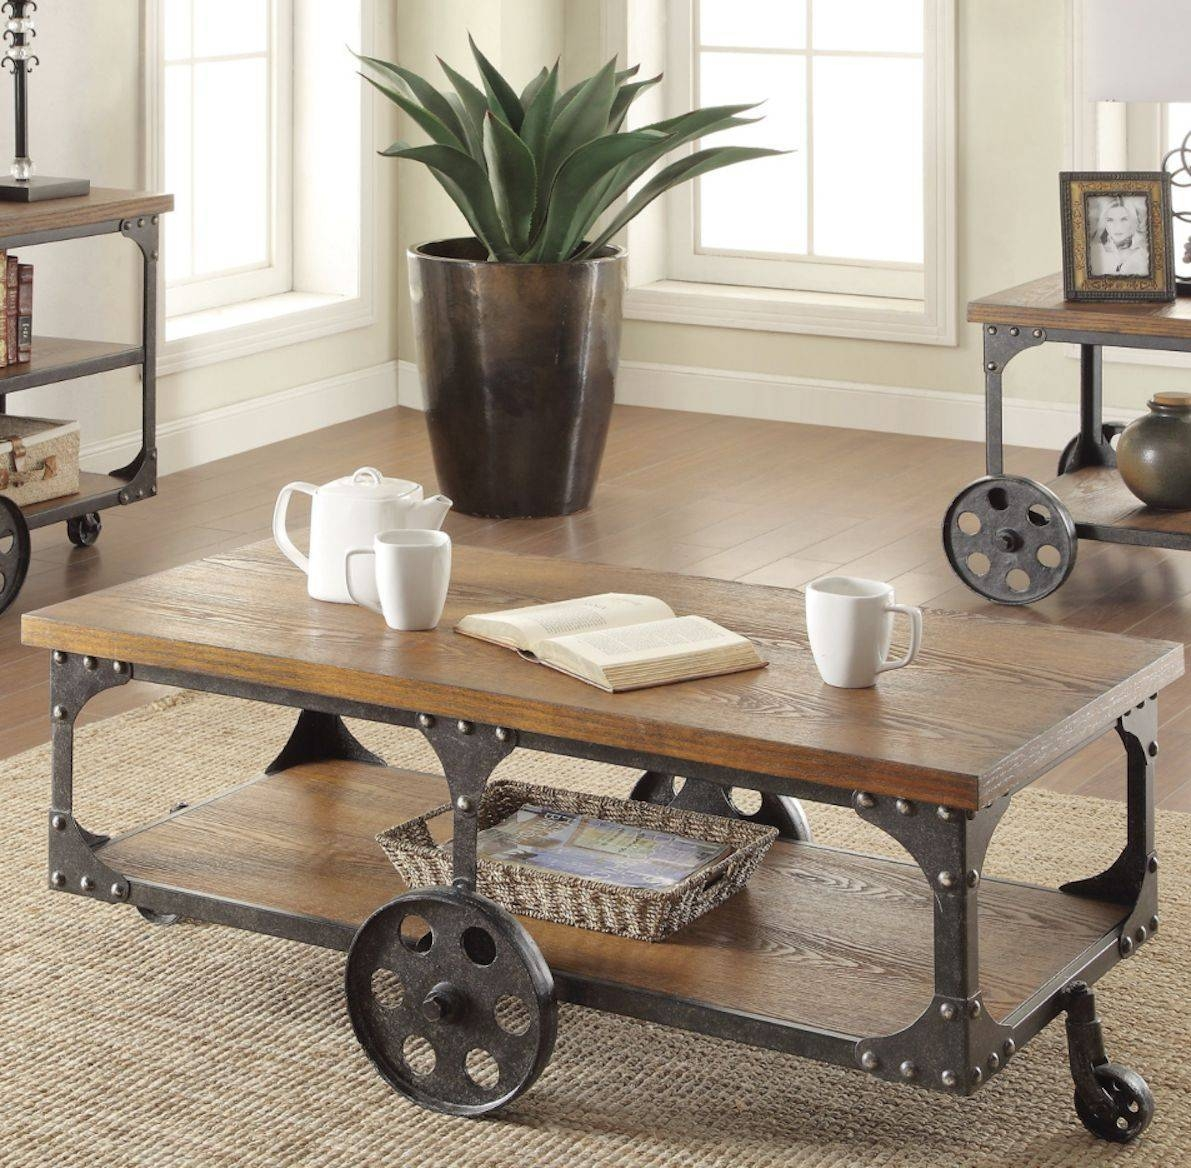 Industrial Coffee Table Utility Cart Storage Console Rustic Wood for Coffee Tables and Tv Stands Matching (Image 18 of 30)